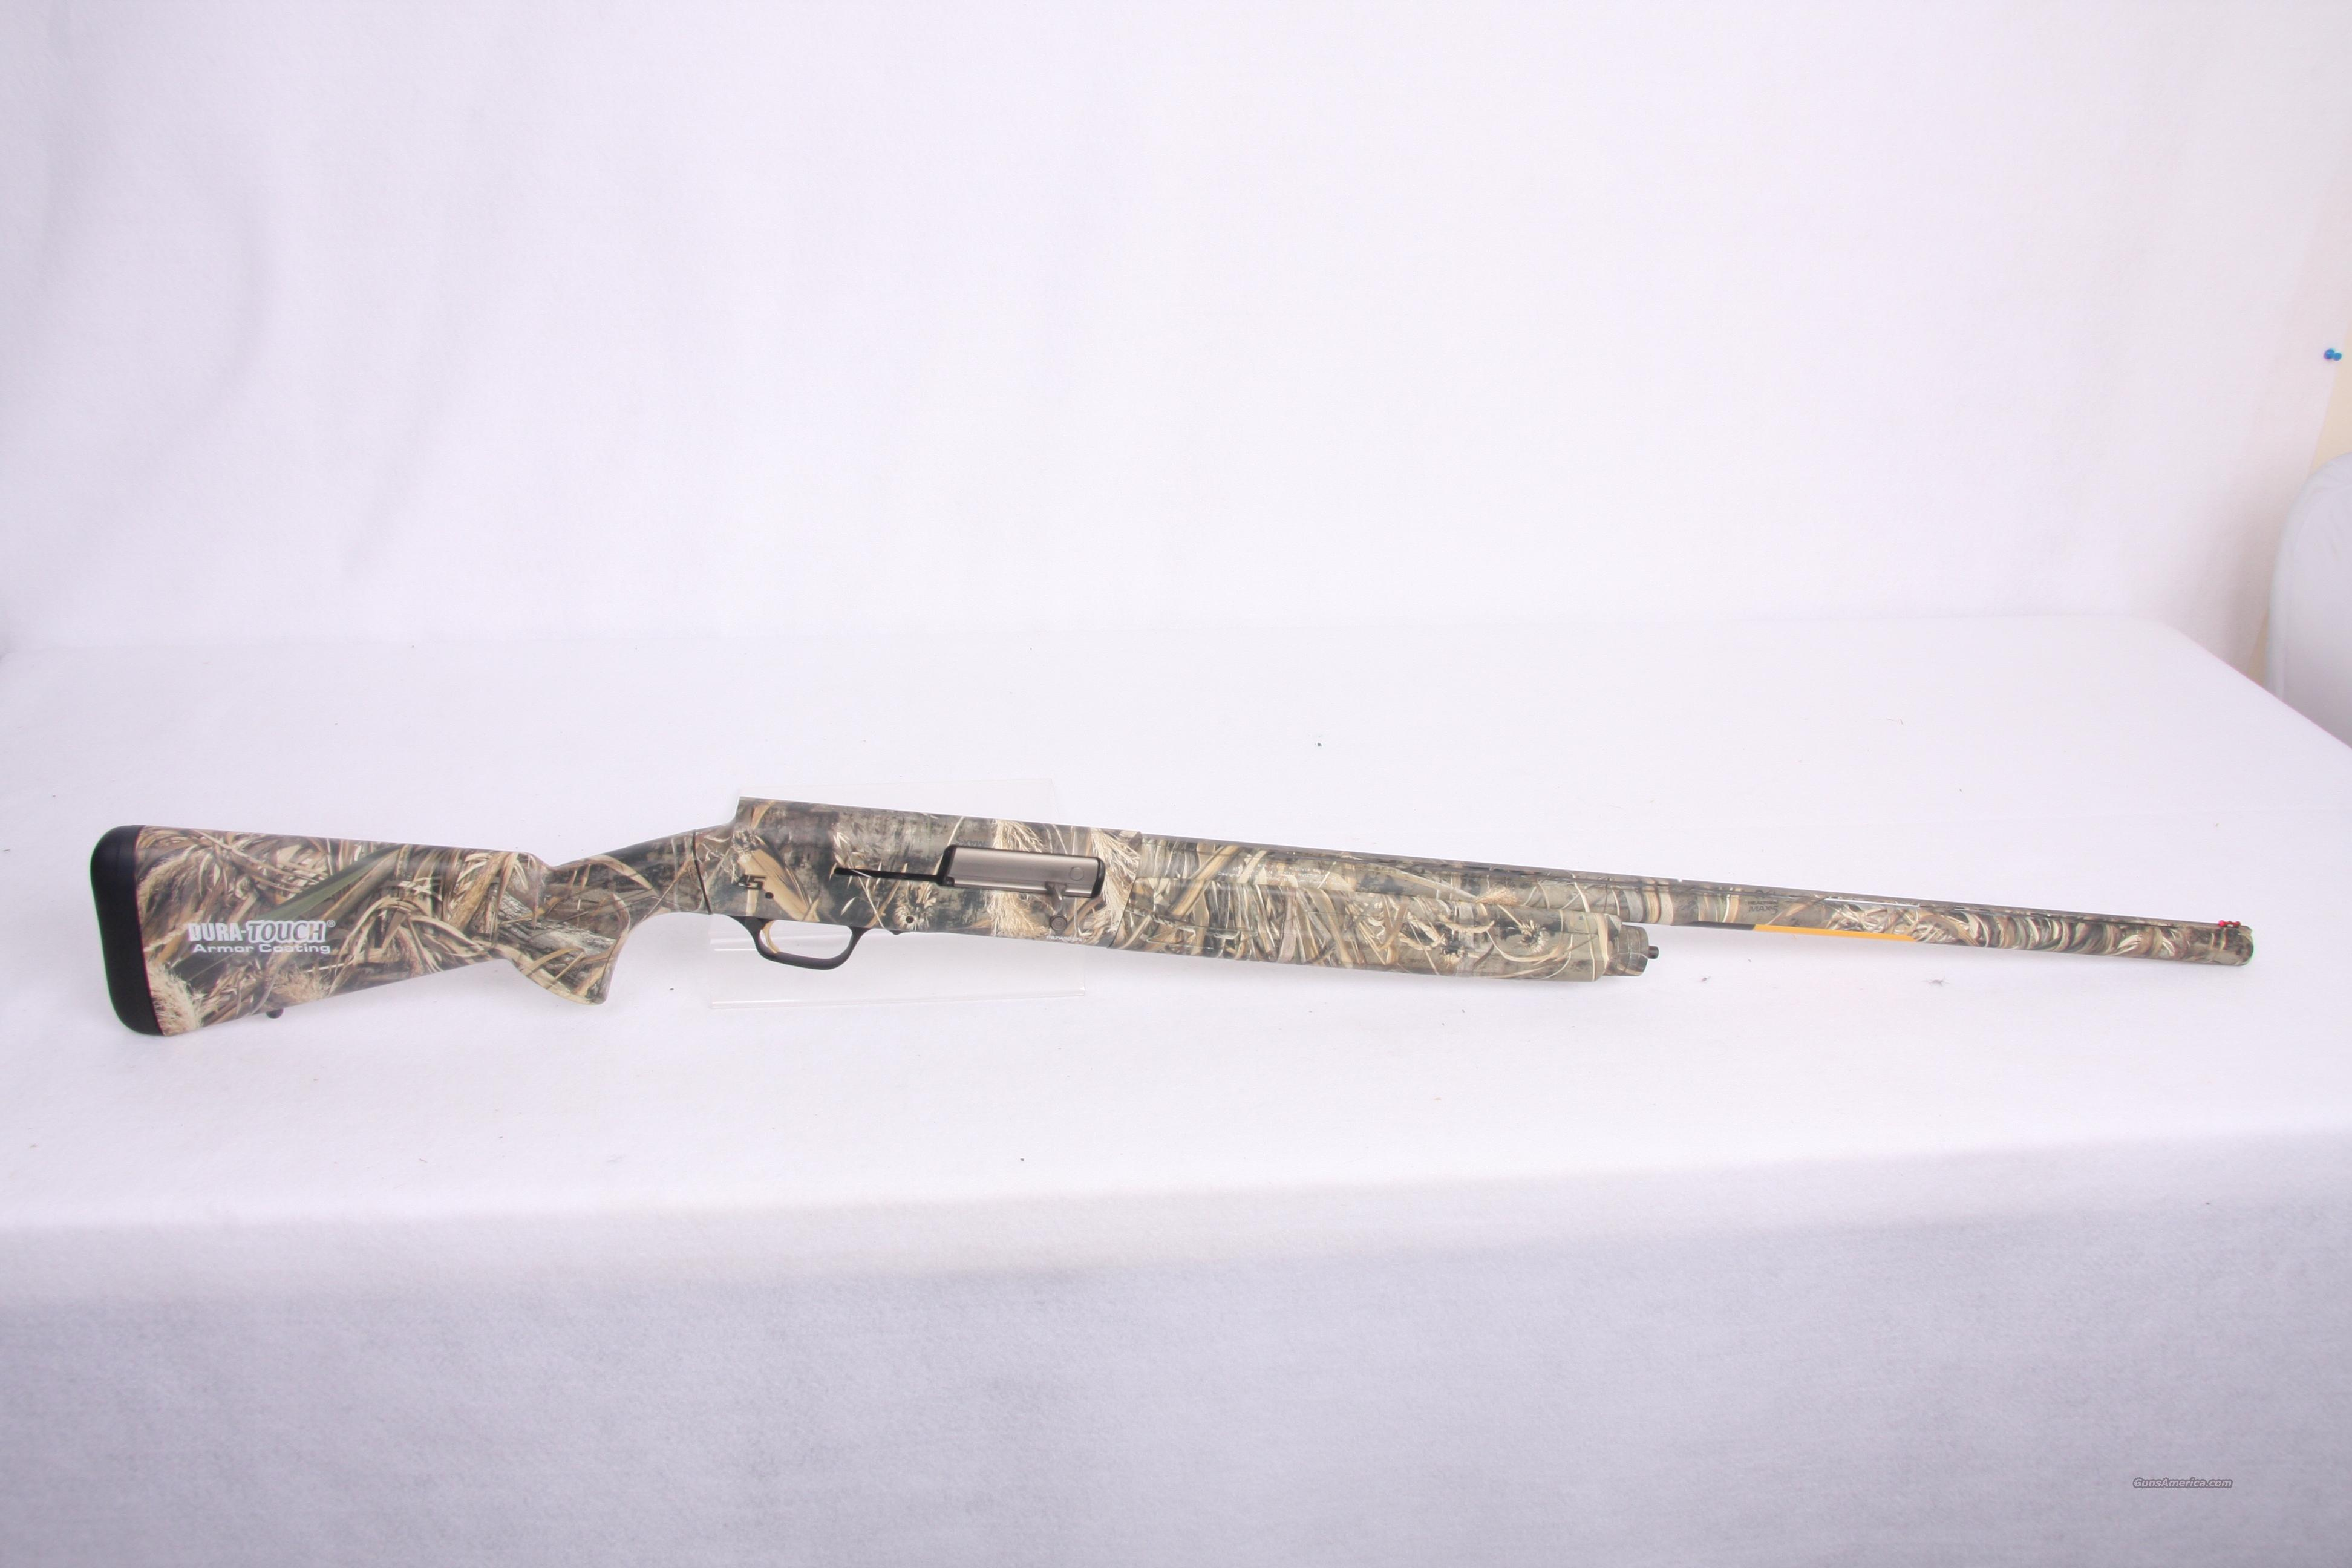 Browning A5 12Ga 28in Max5  Guns > Shotguns > Browning Shotguns > Autoloaders > Hunting